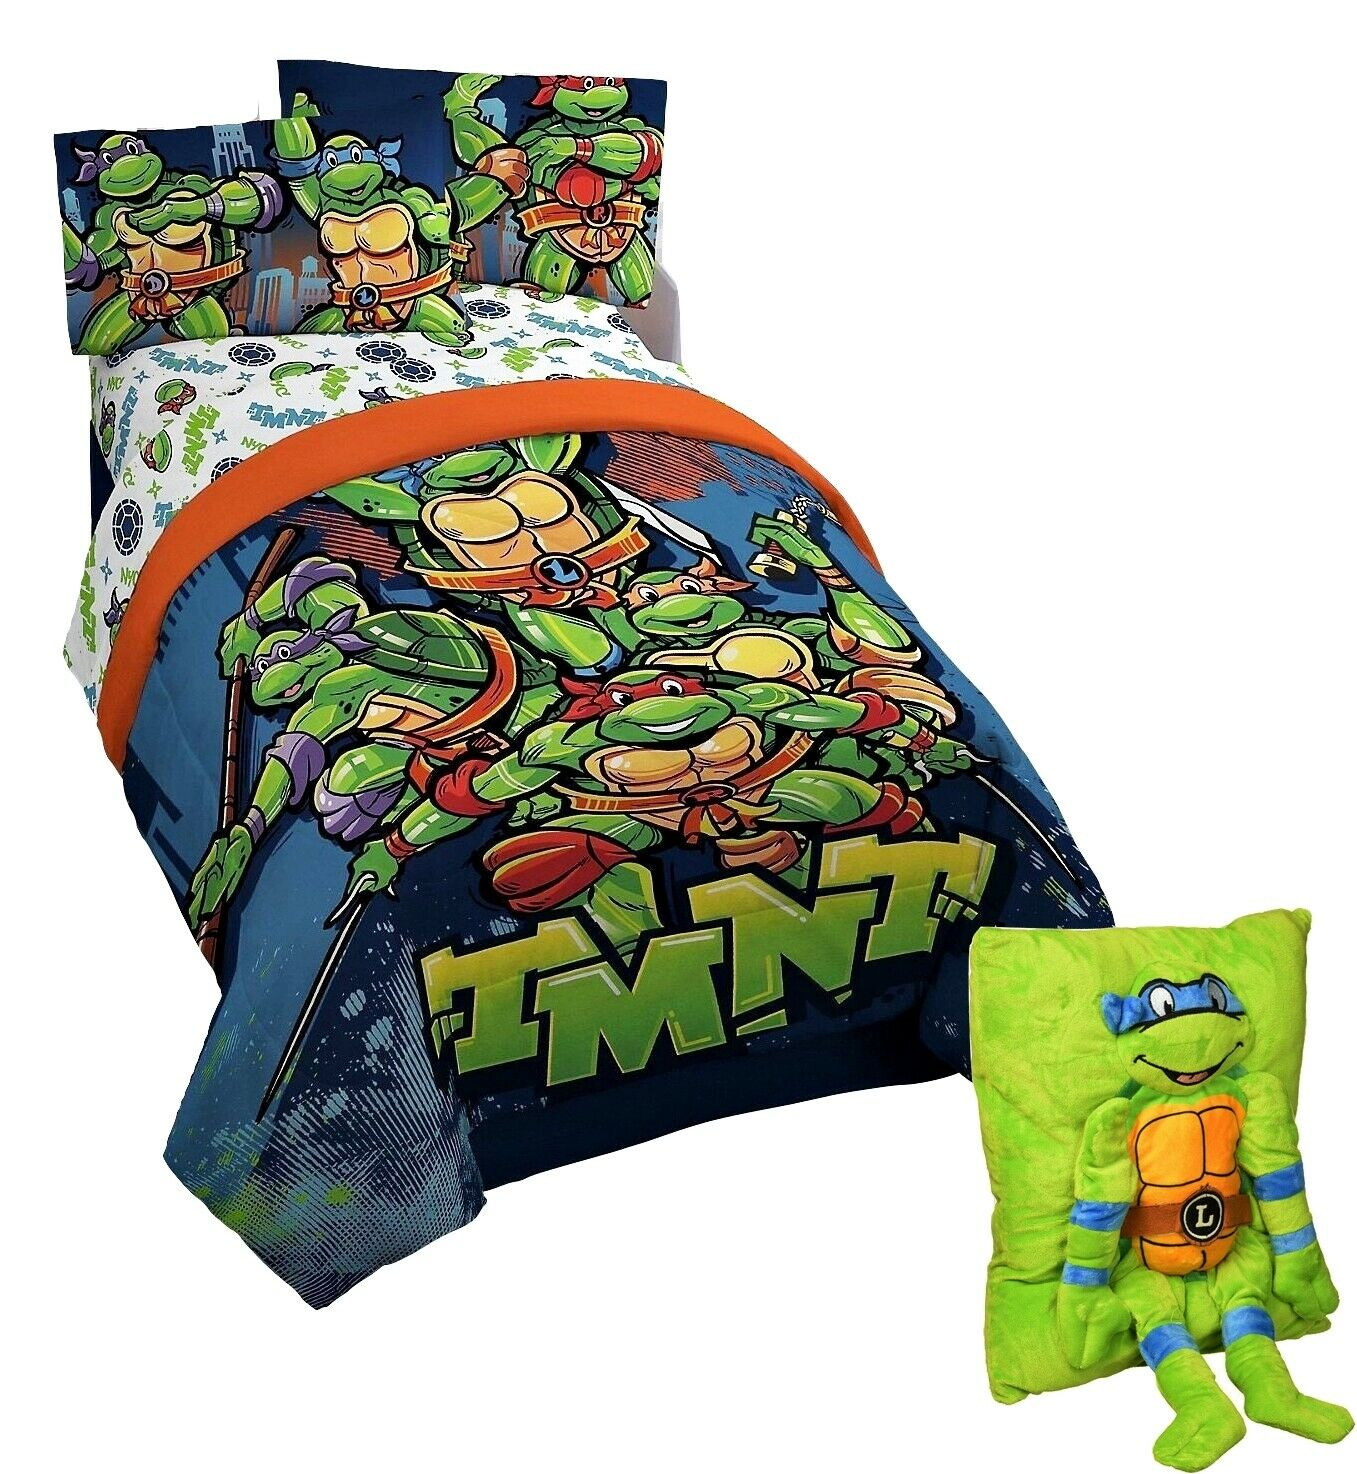 Bettwaren Wäsche Matratzen Single Bed Duvet Cover Set Teenage Mutant Ninja Turtles Green Blue Orange Kids Maybrands Com Ng